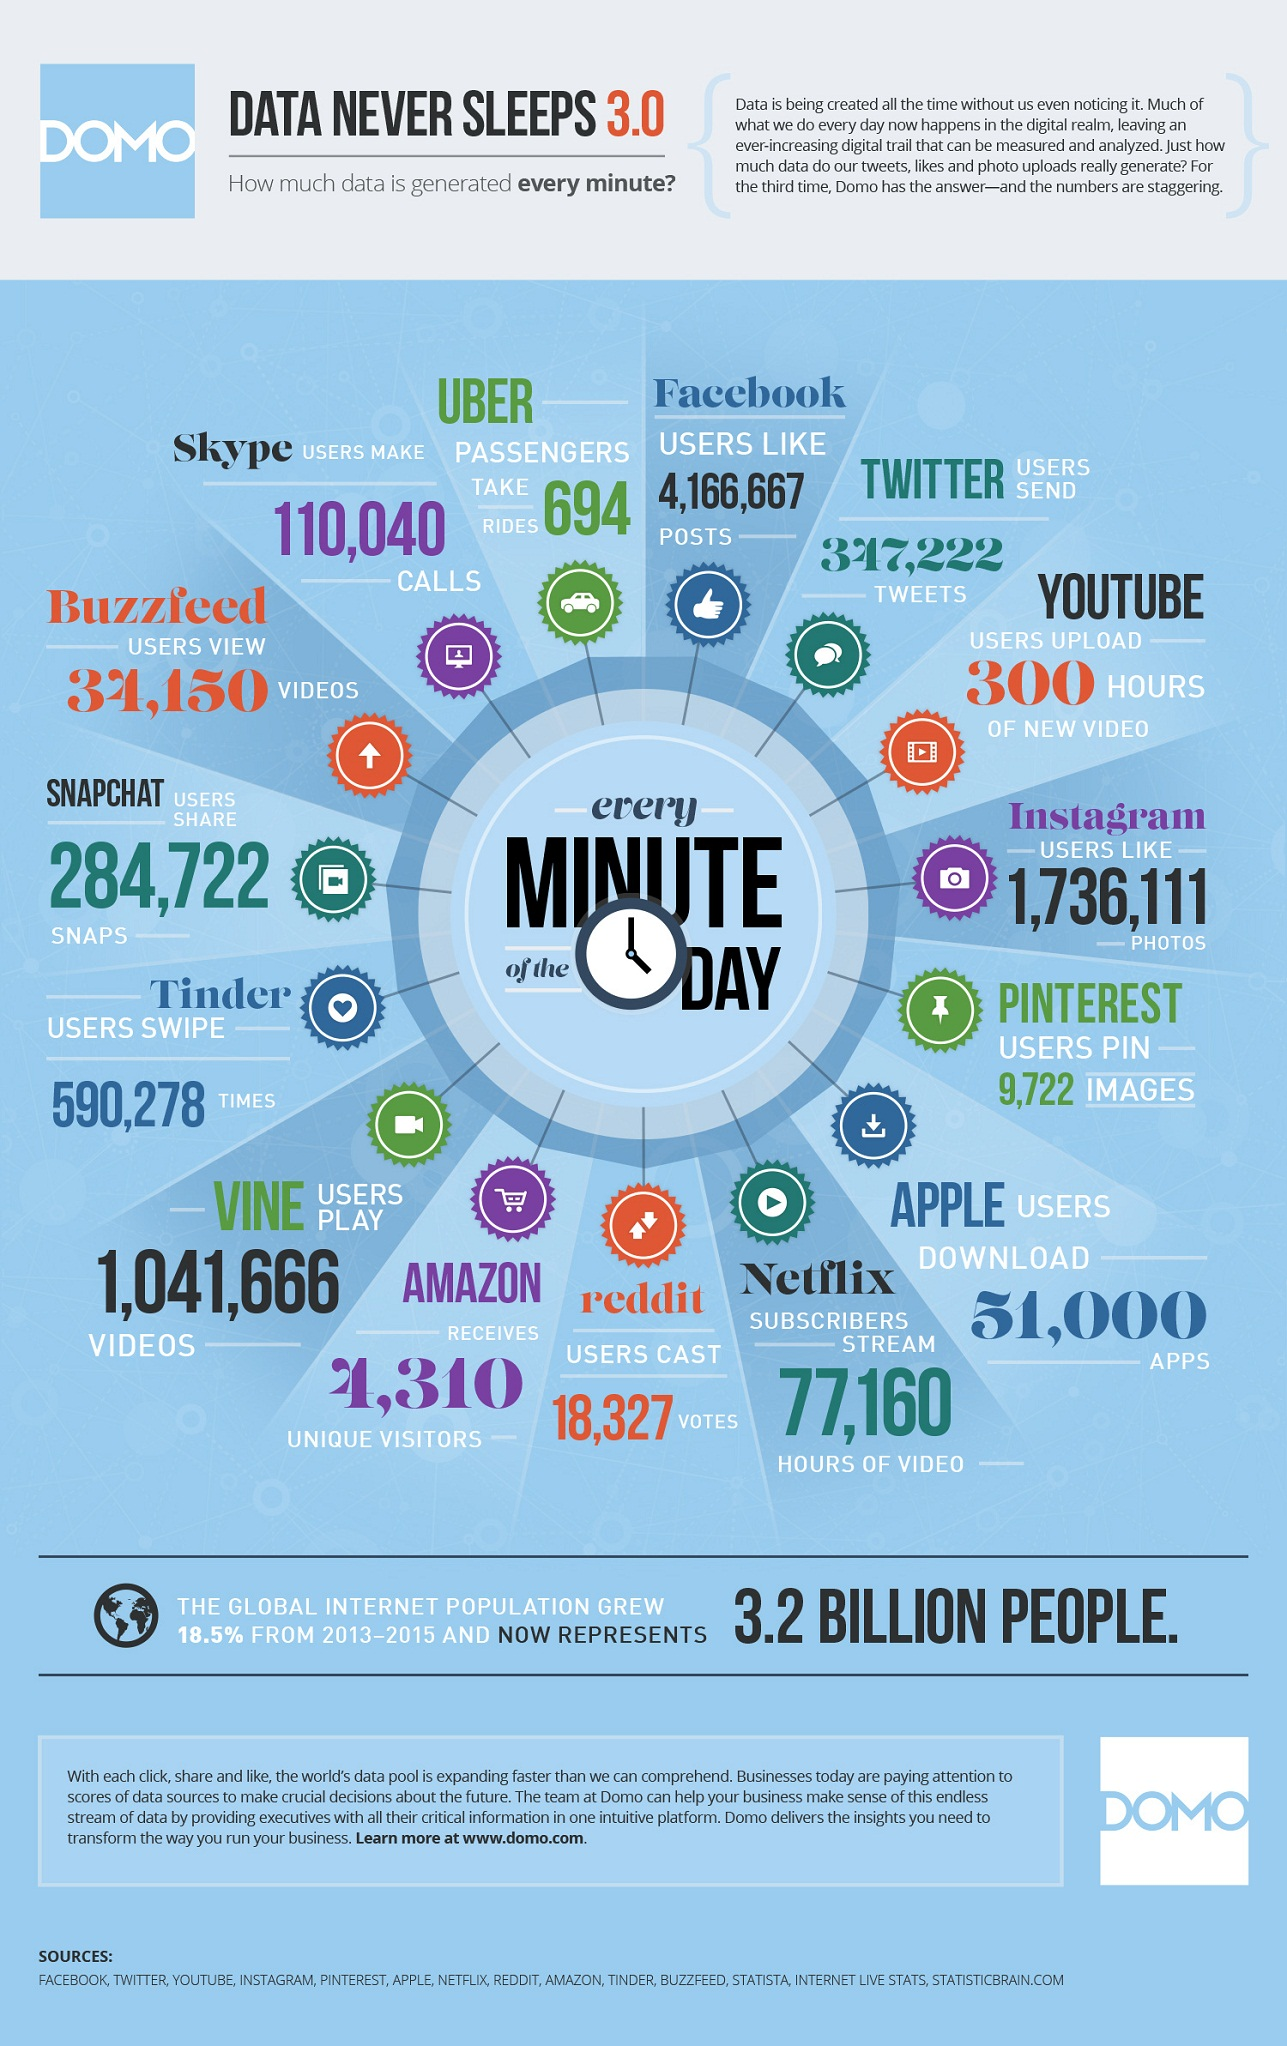 Facebook, Twitter, YouTube, Pinterest, Instagram: What Happens in One Minute on the Internet - #infographic